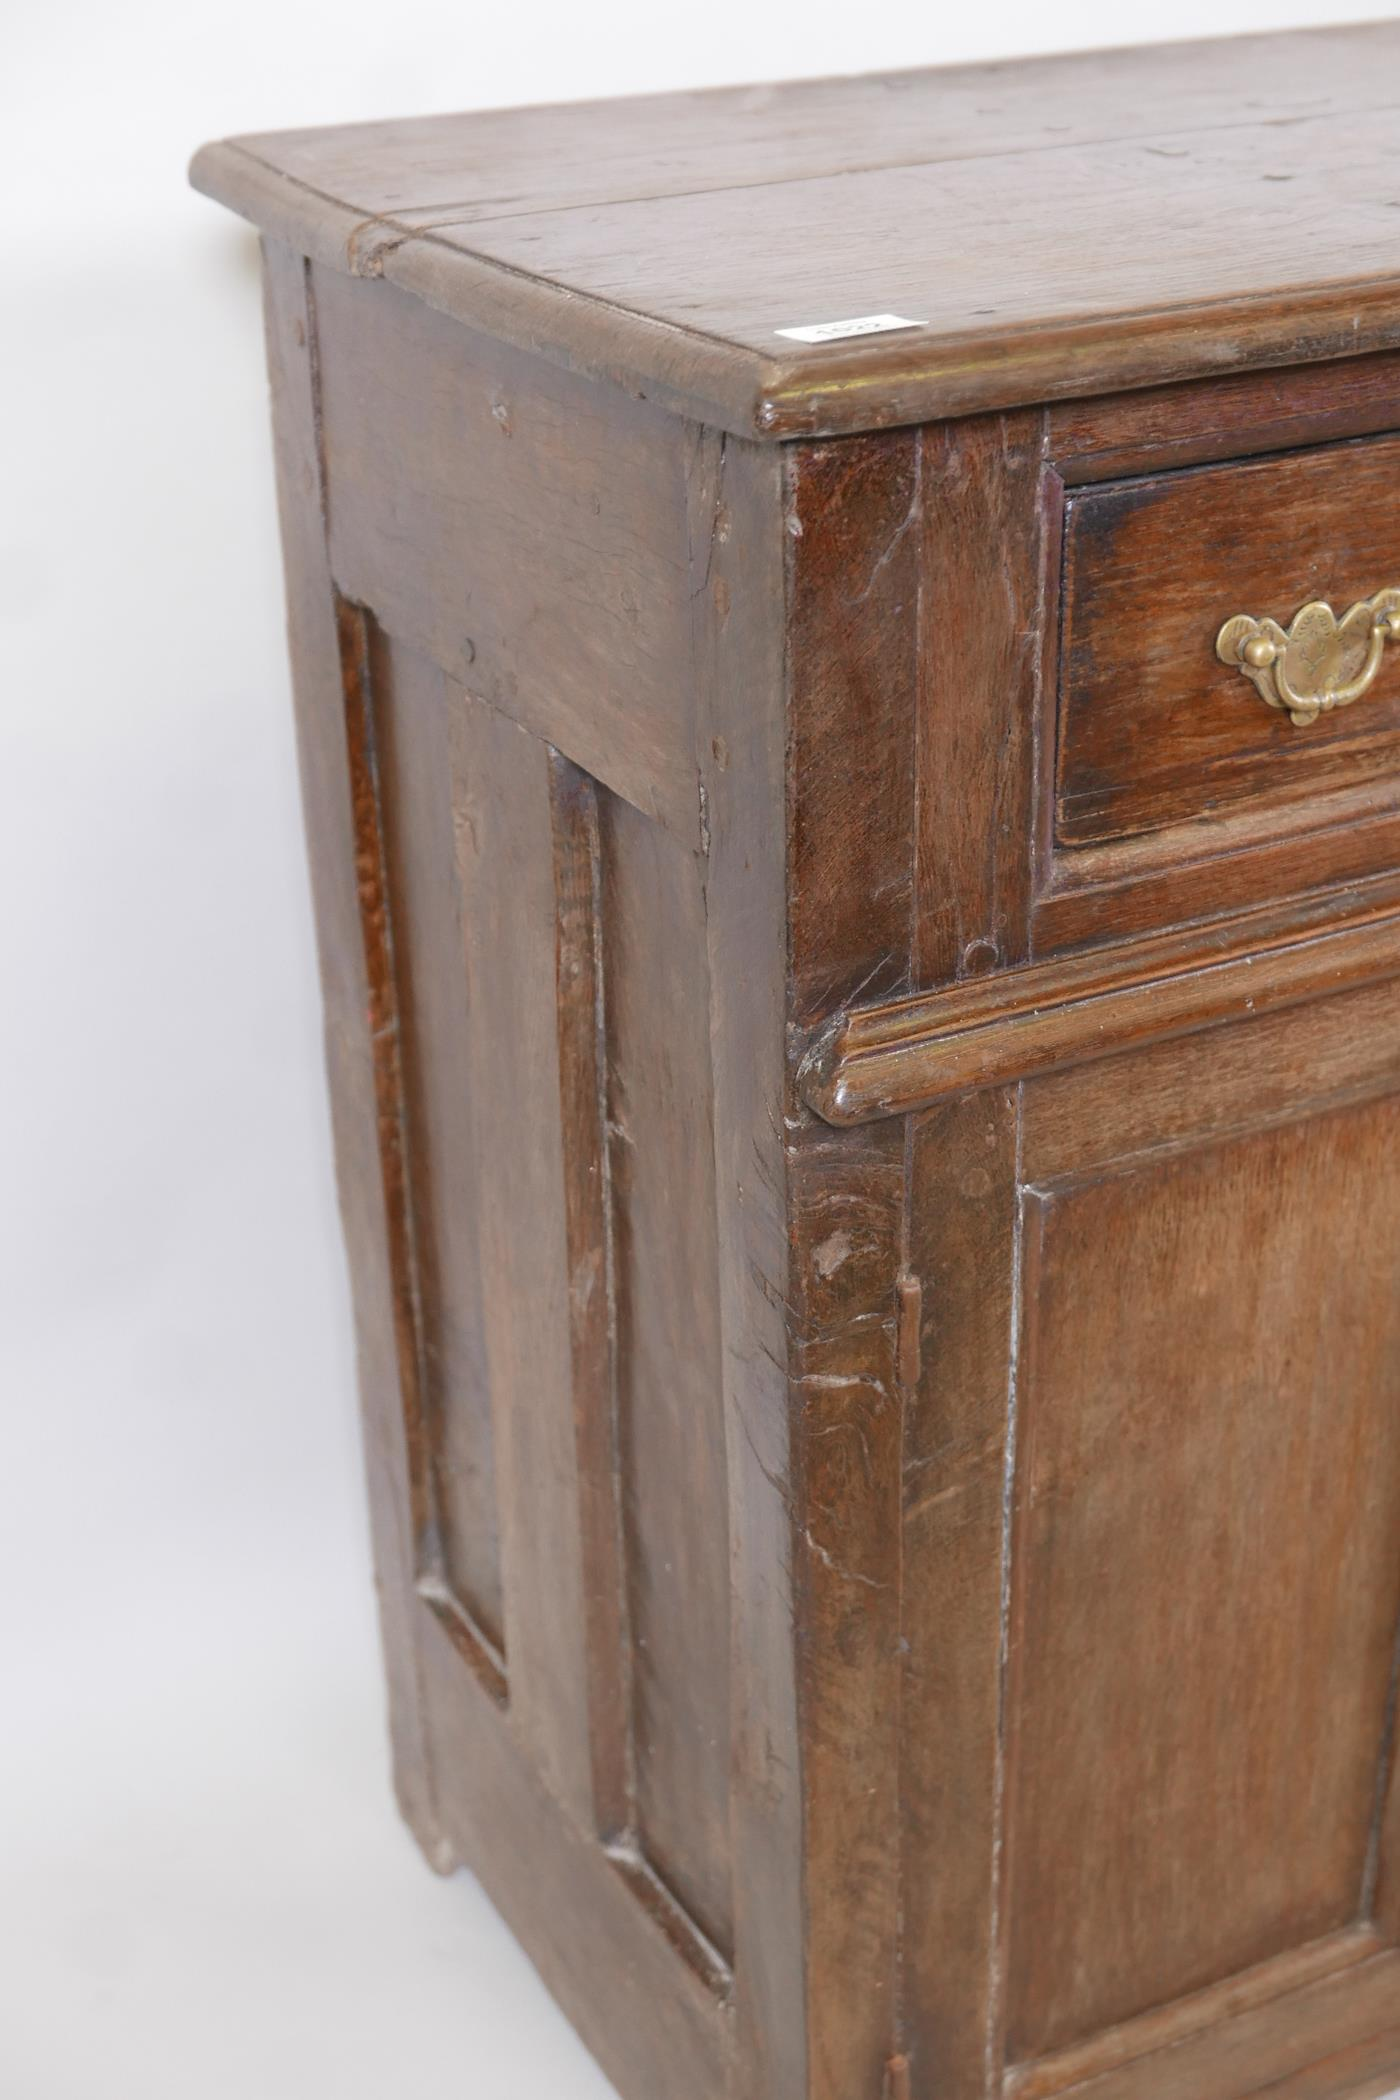 An antique oak side cabinet, with panelled ends and cupboards under three drawers, C18th and later - Image 4 of 5